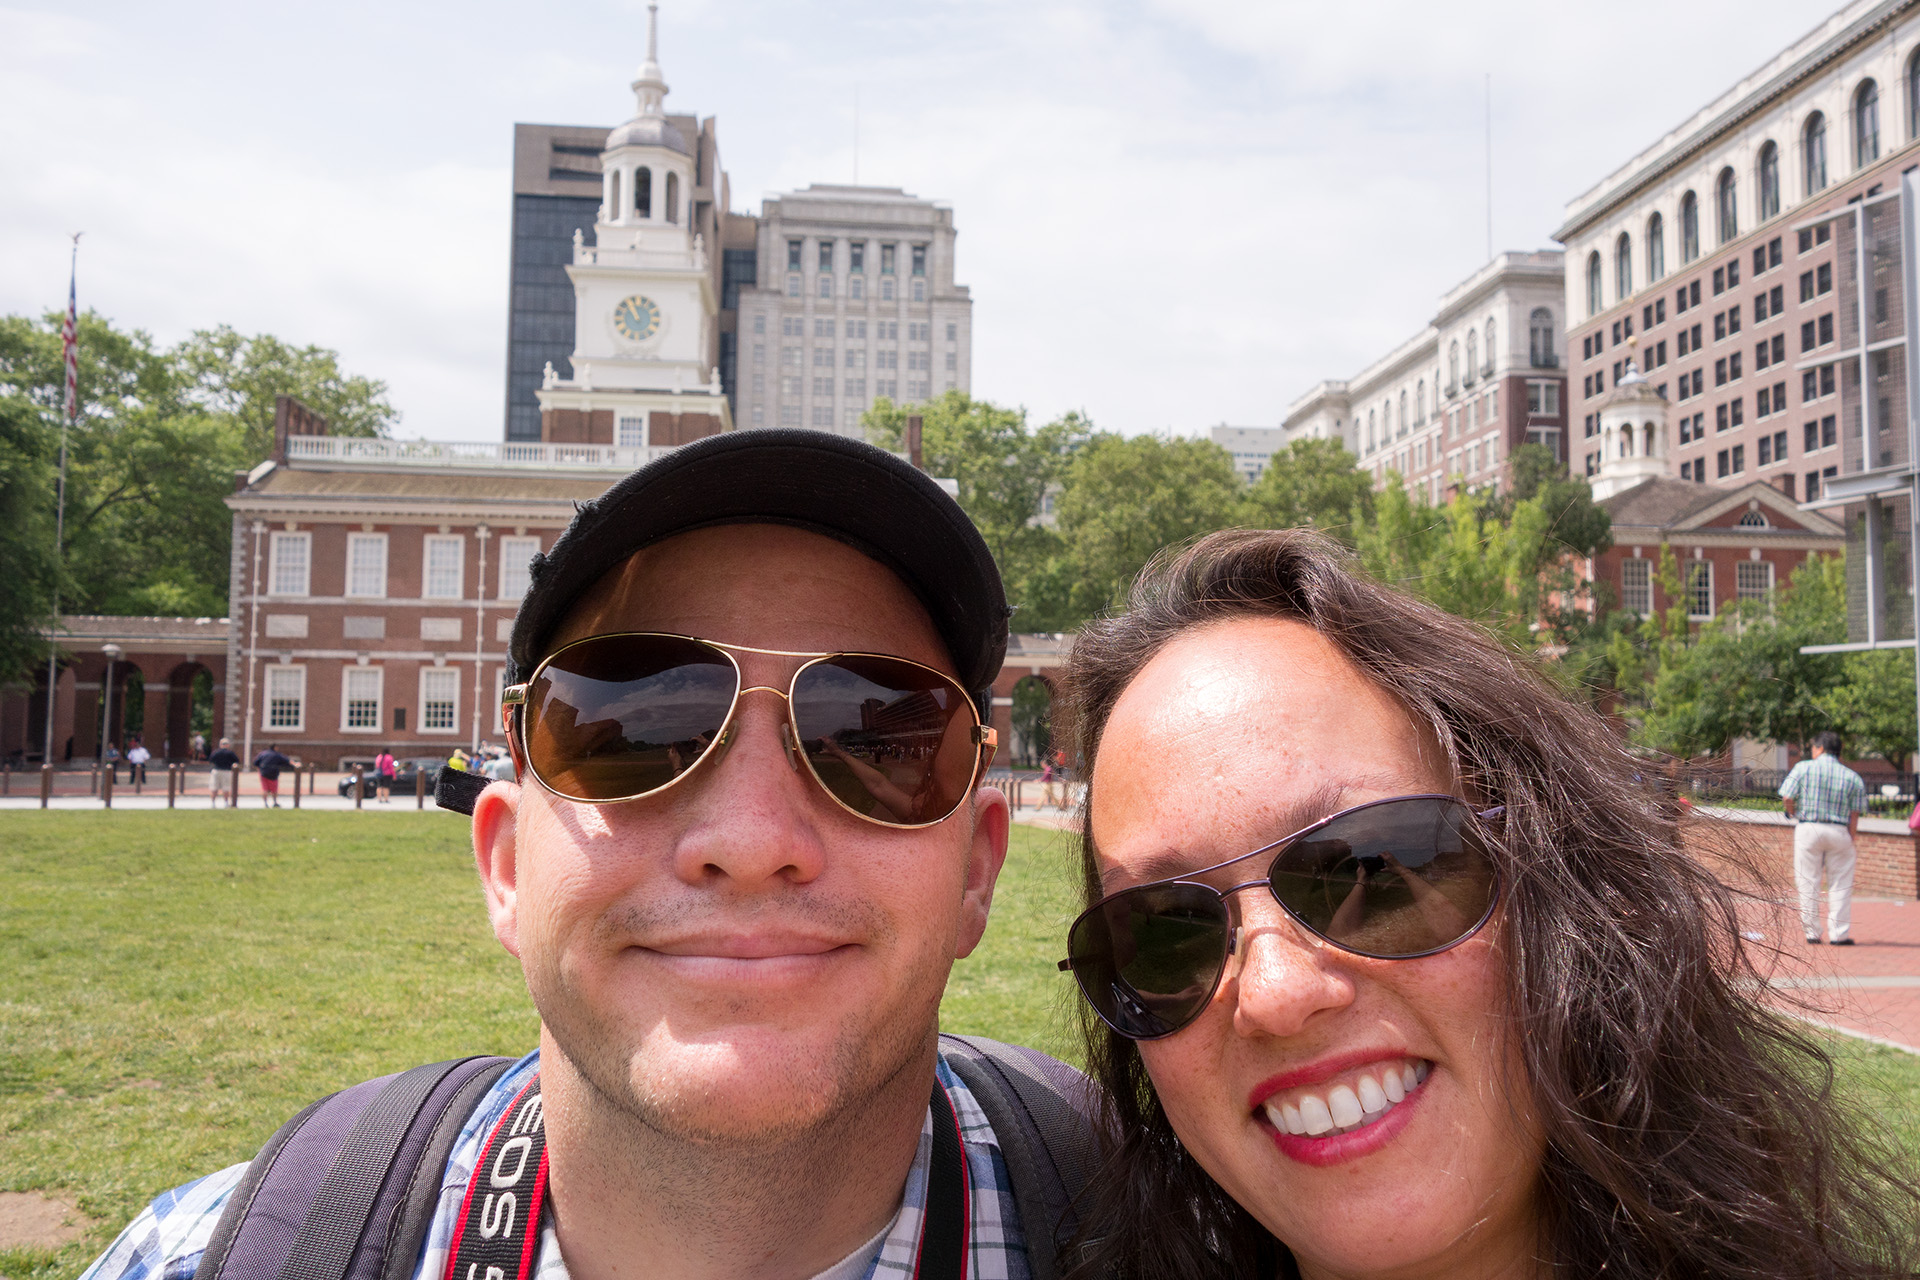 Selfie on Independence Mall.